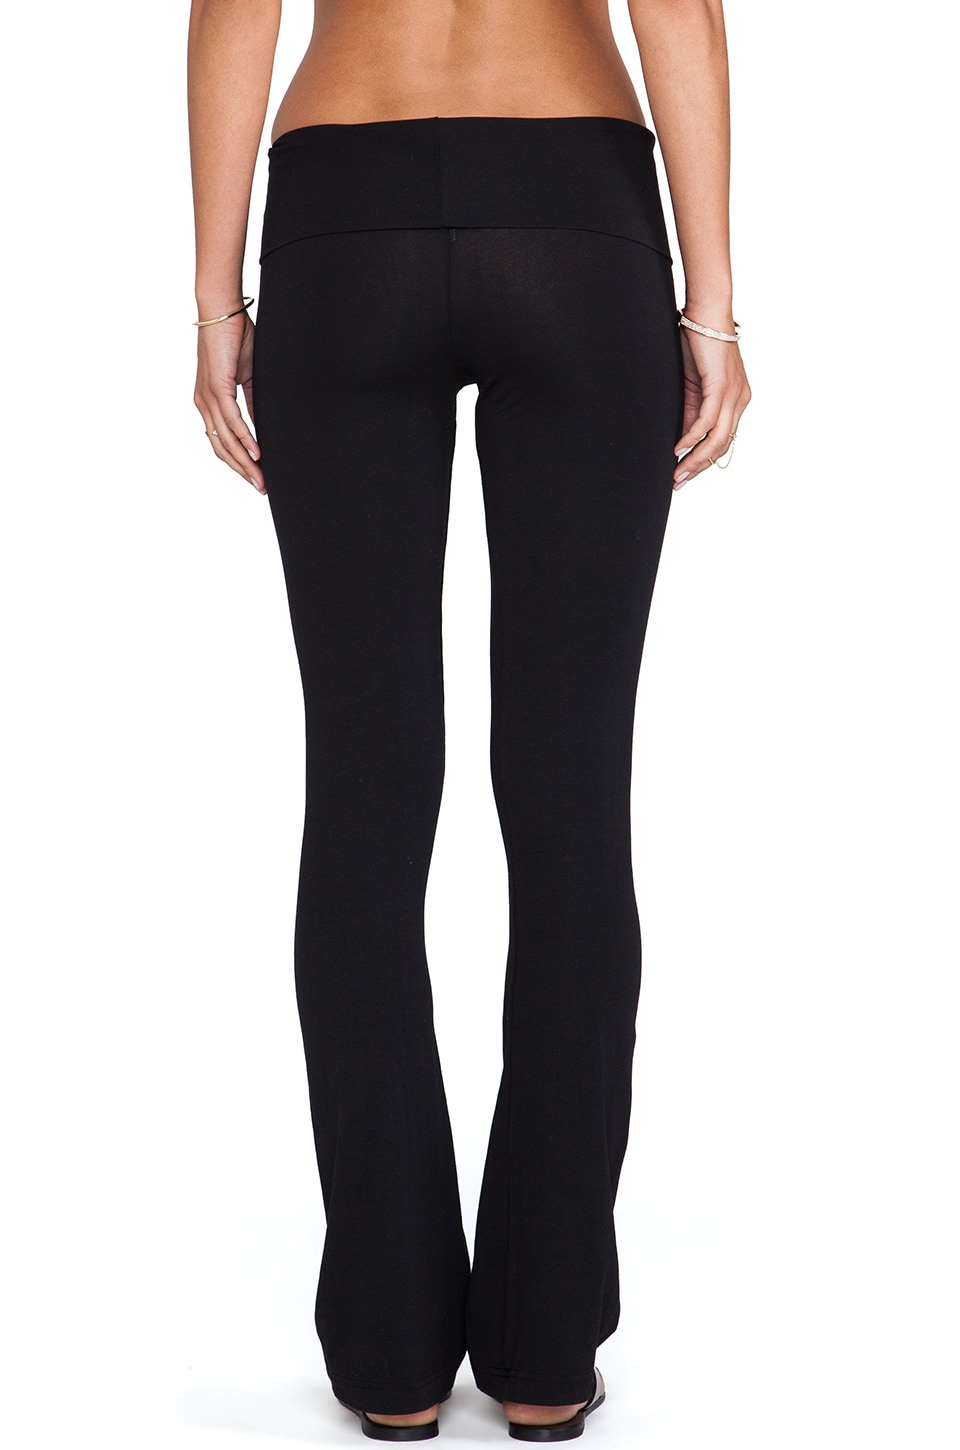 Bobi Flare Yoga Pant in Black | REVOLVE